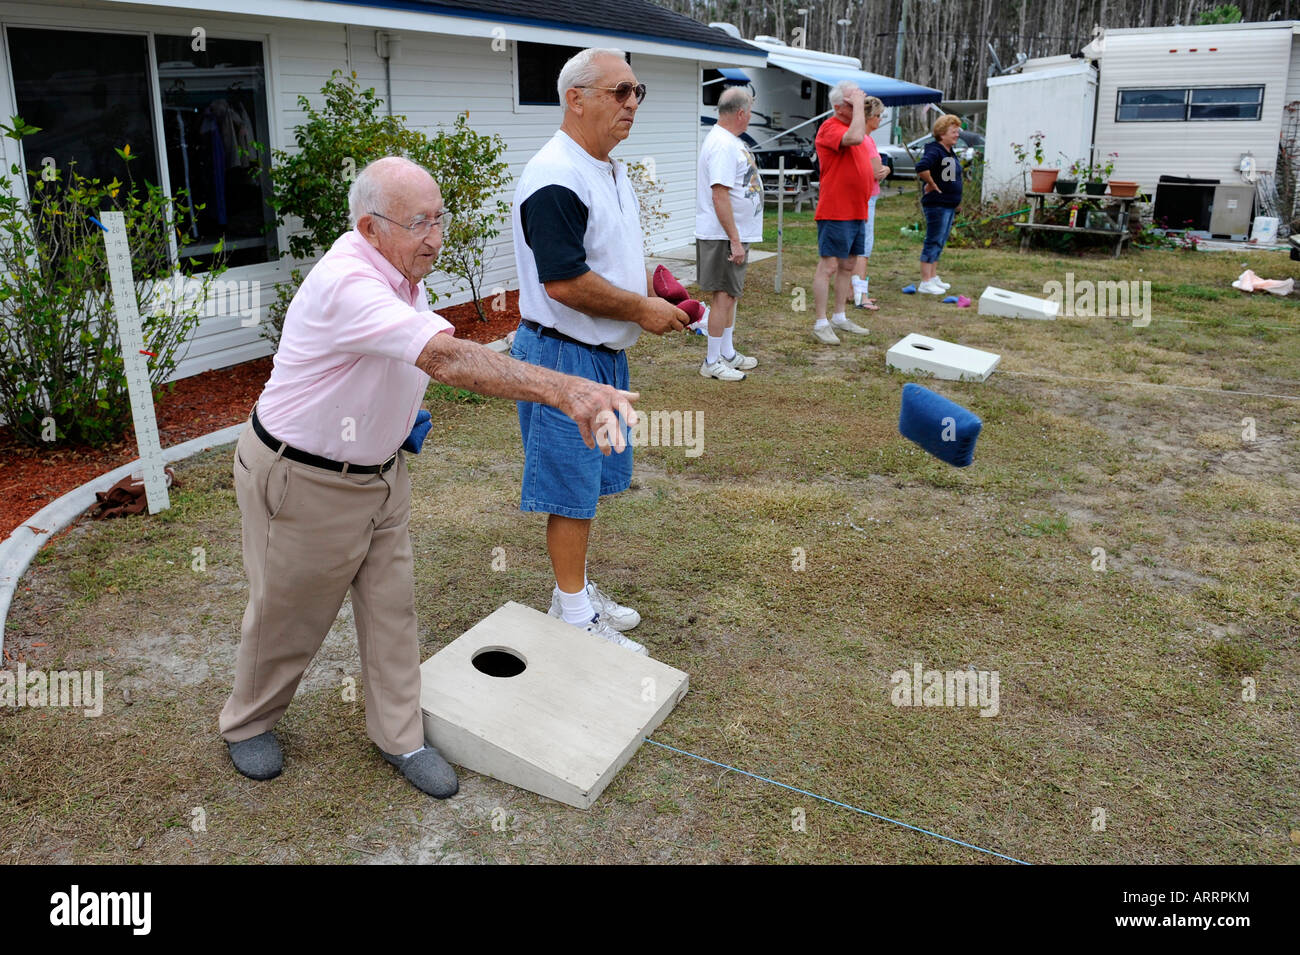 93 year old Senior retired citizen plays game of bean bag toss in a recreational vehicle camping park in Bonita - Stock Image